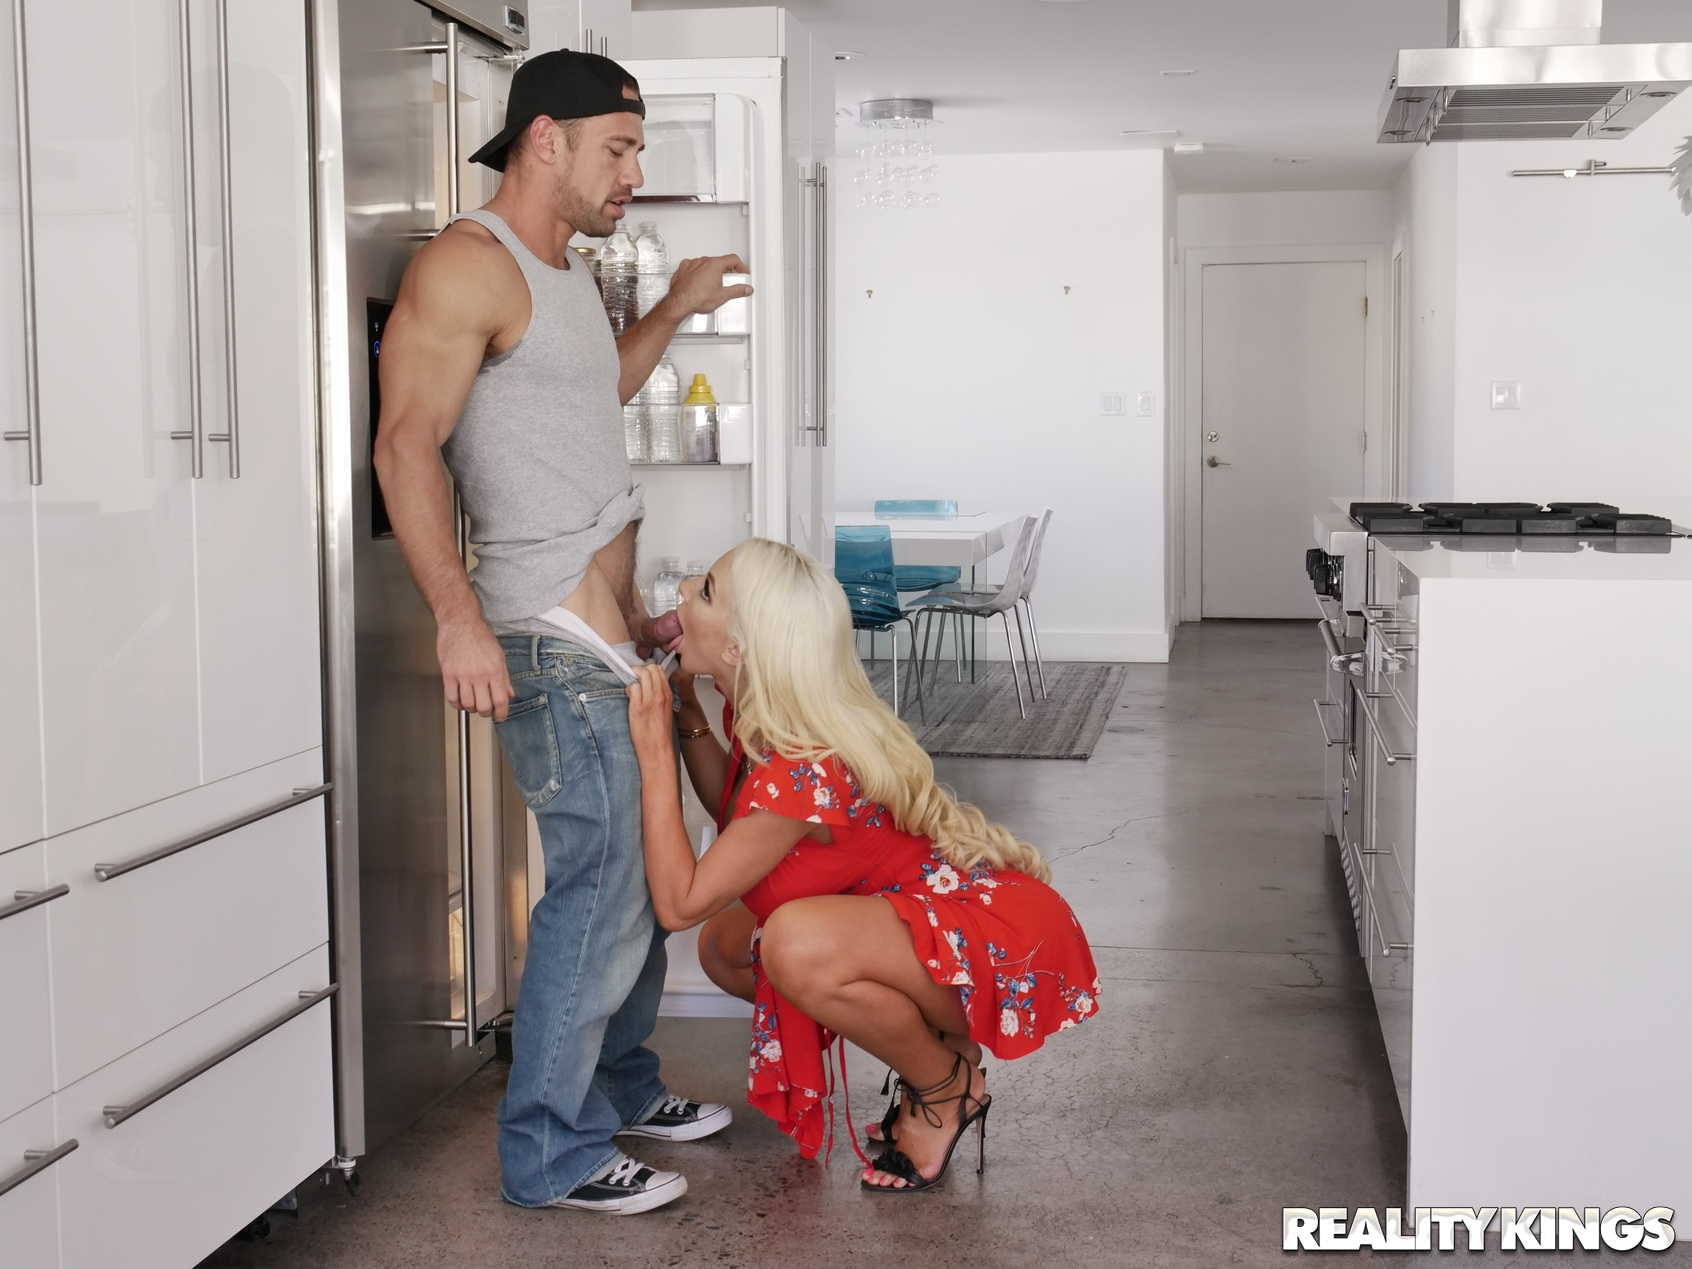 Reality Kings 'Kitchen Cockfidential' starring Nicolette Shea (Photo 80)